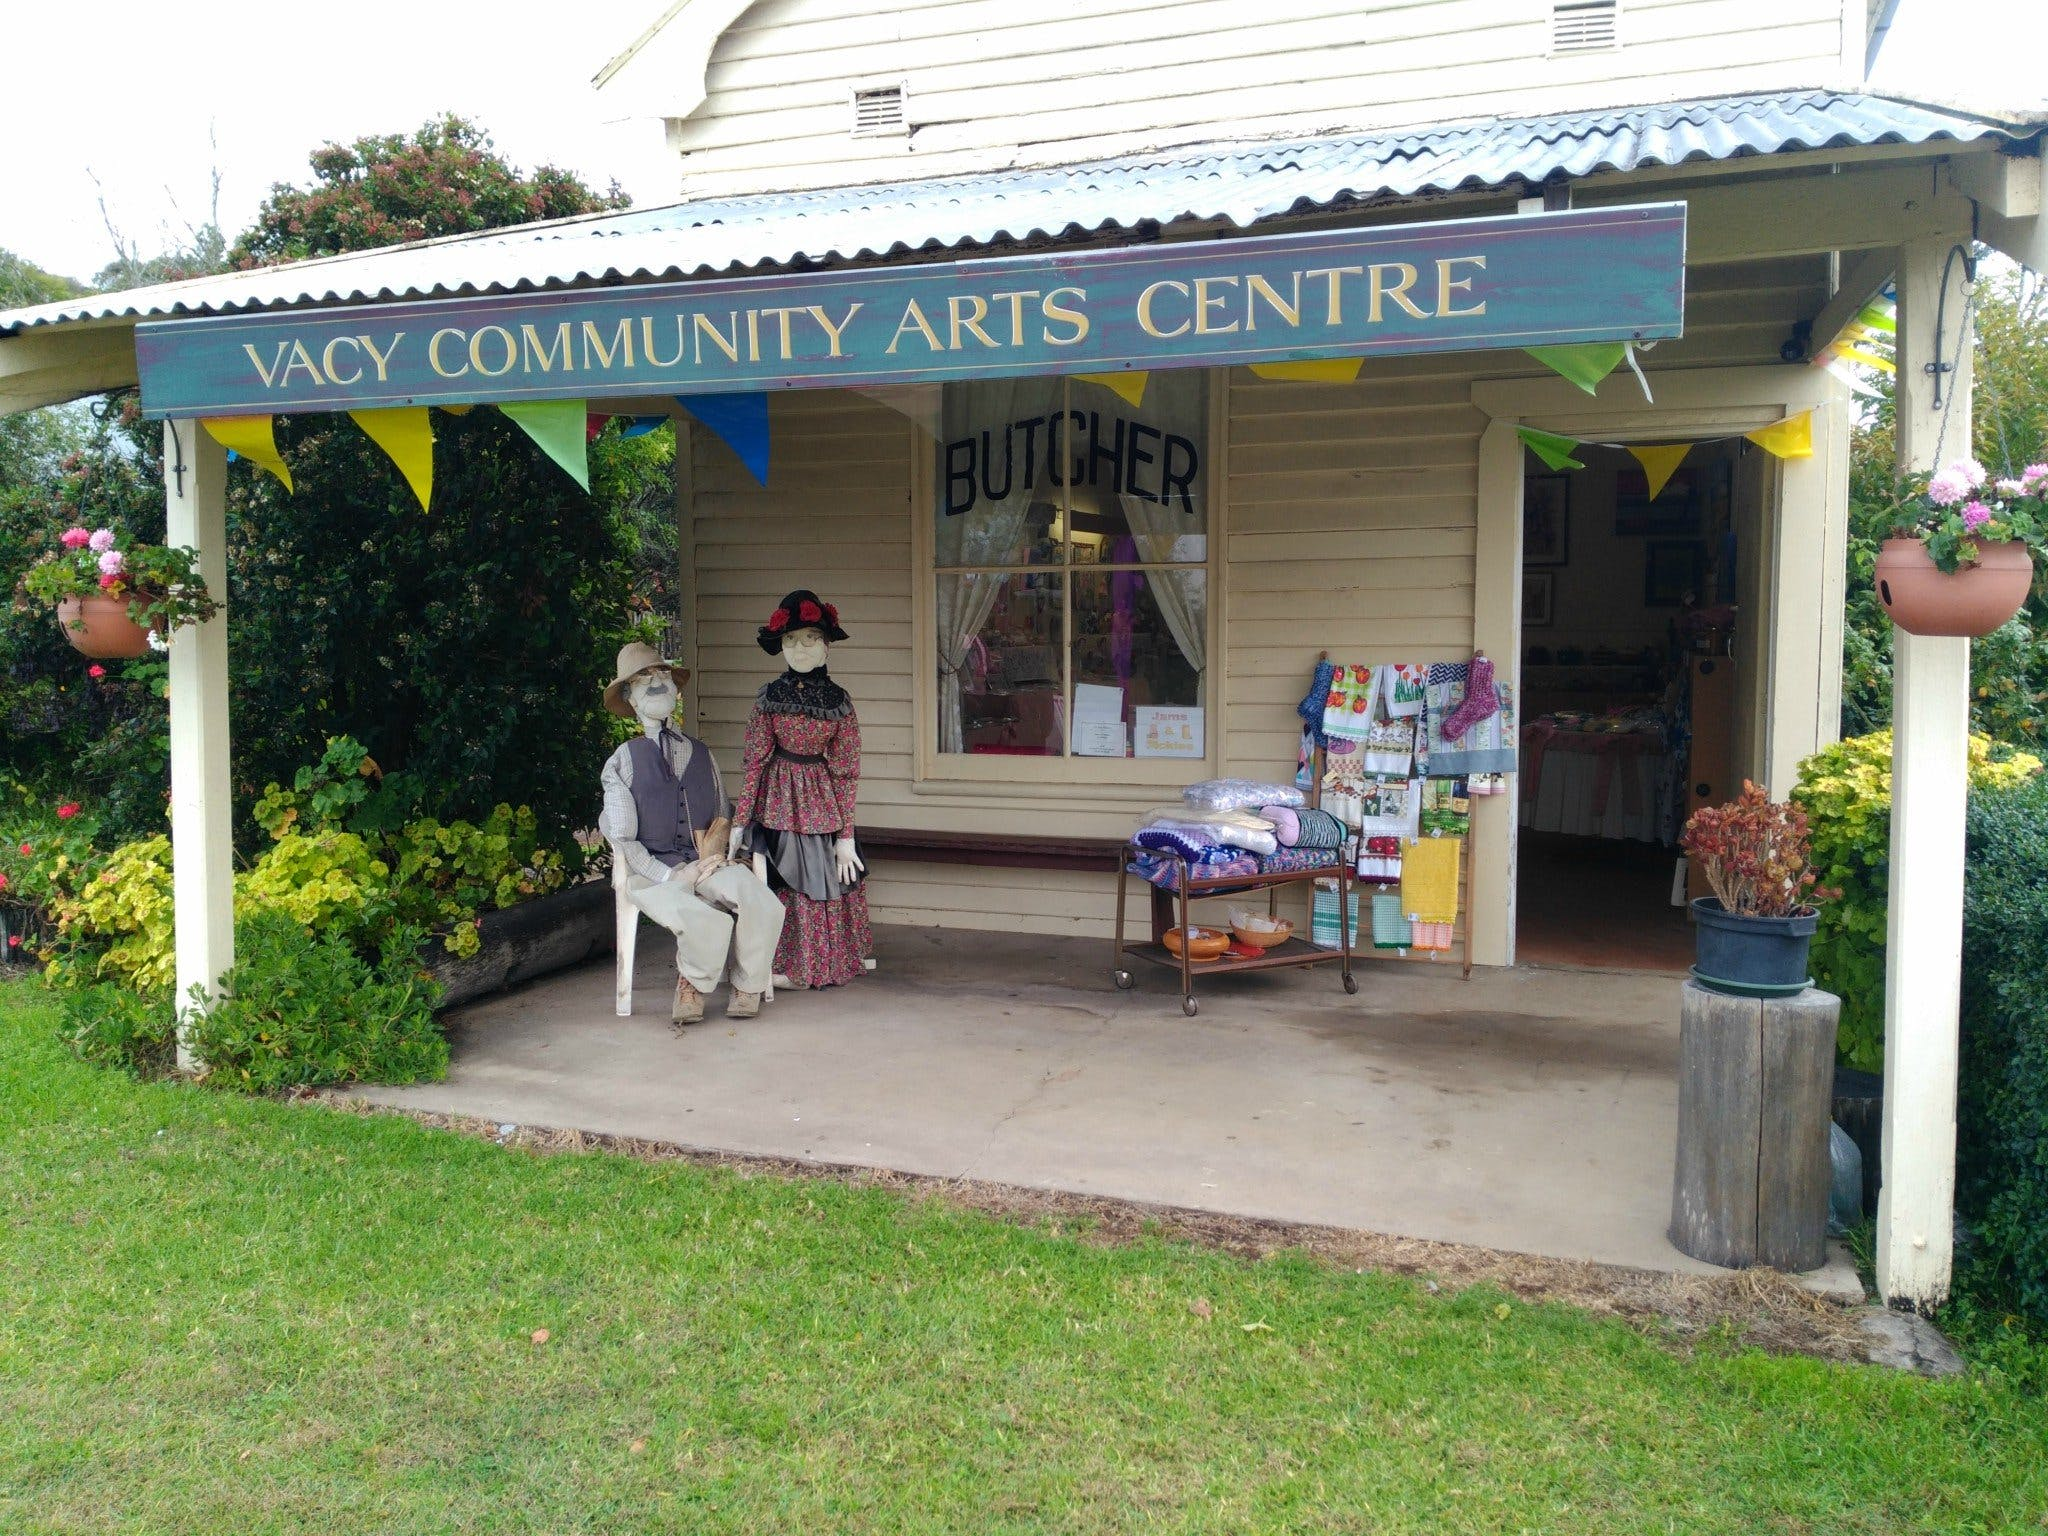 Vacy Community Arts Centre